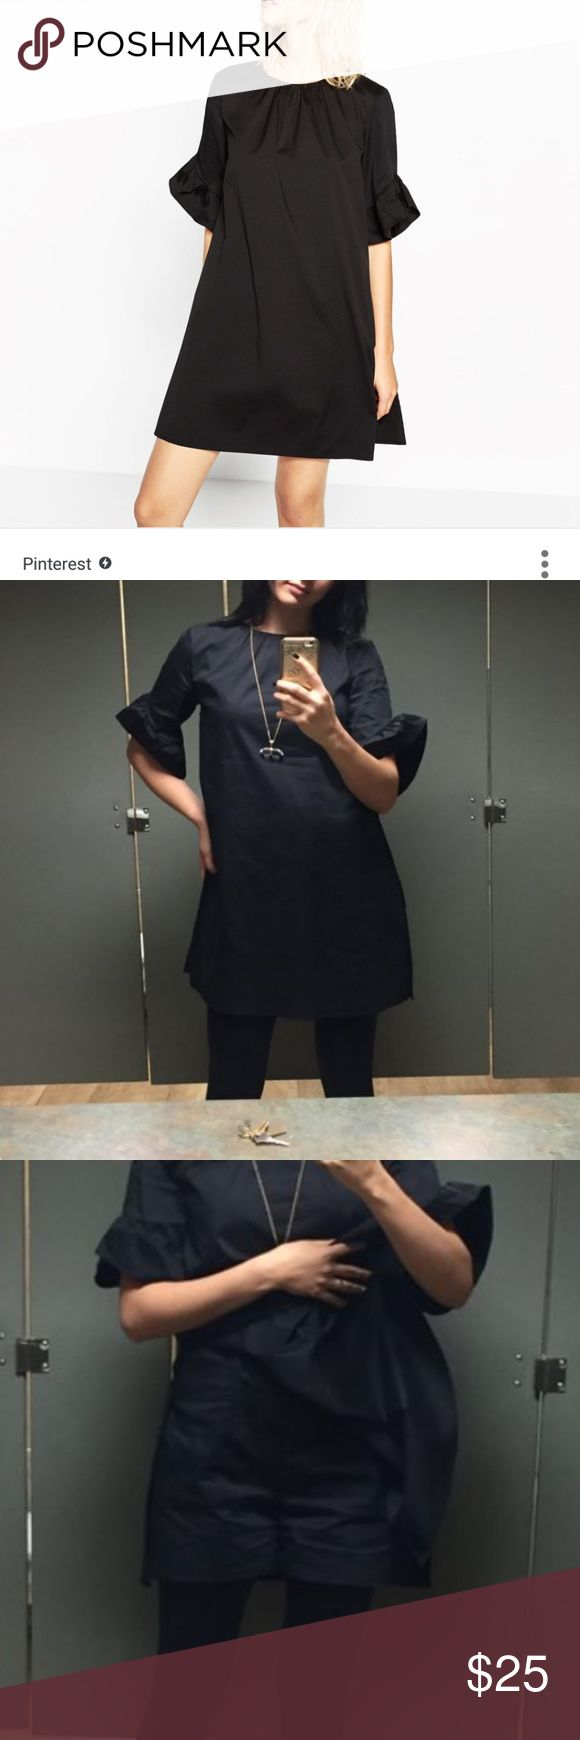 ZARA Jumpsuit dress with frill on sleeves Color is deep black (pics are little blurry). Gently worn, no flaws except it being gently worn. Really nice looking for both office and date nights. Zara Dresses Mini